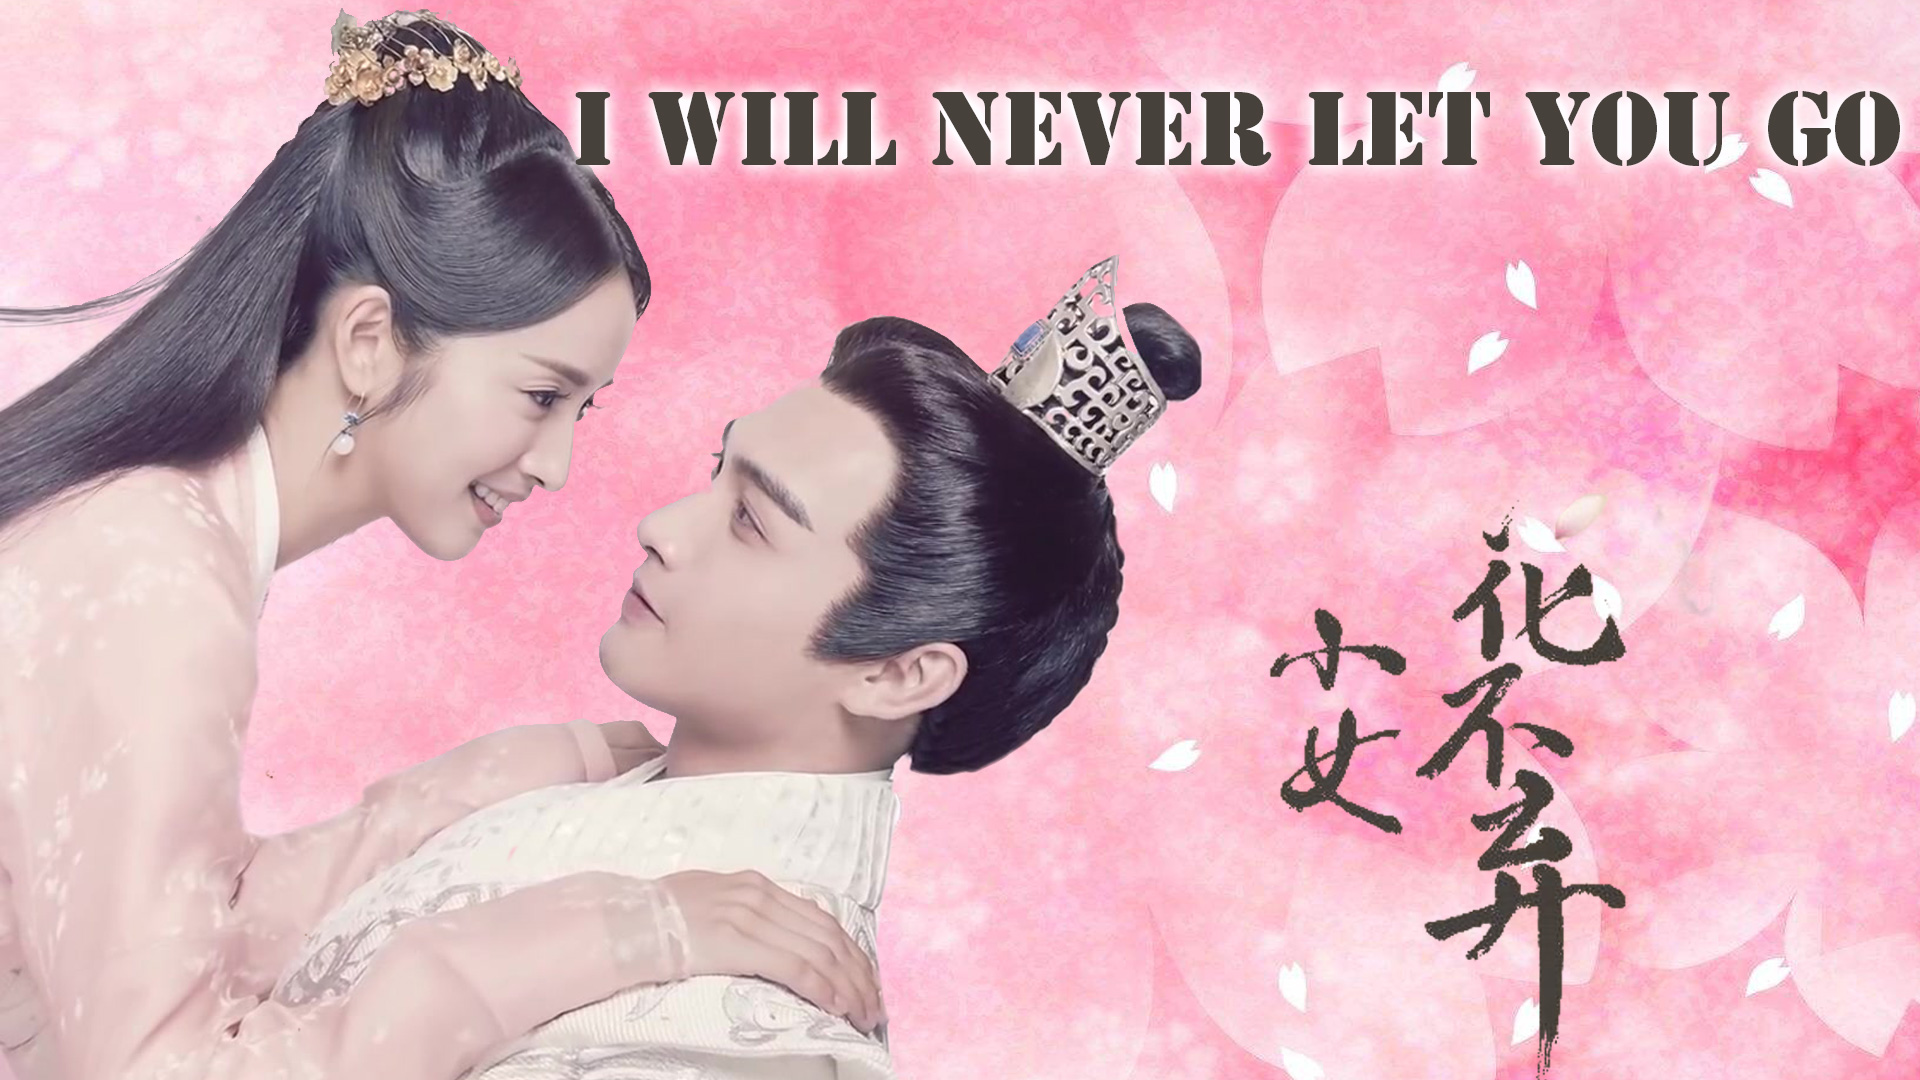 I will never let you go